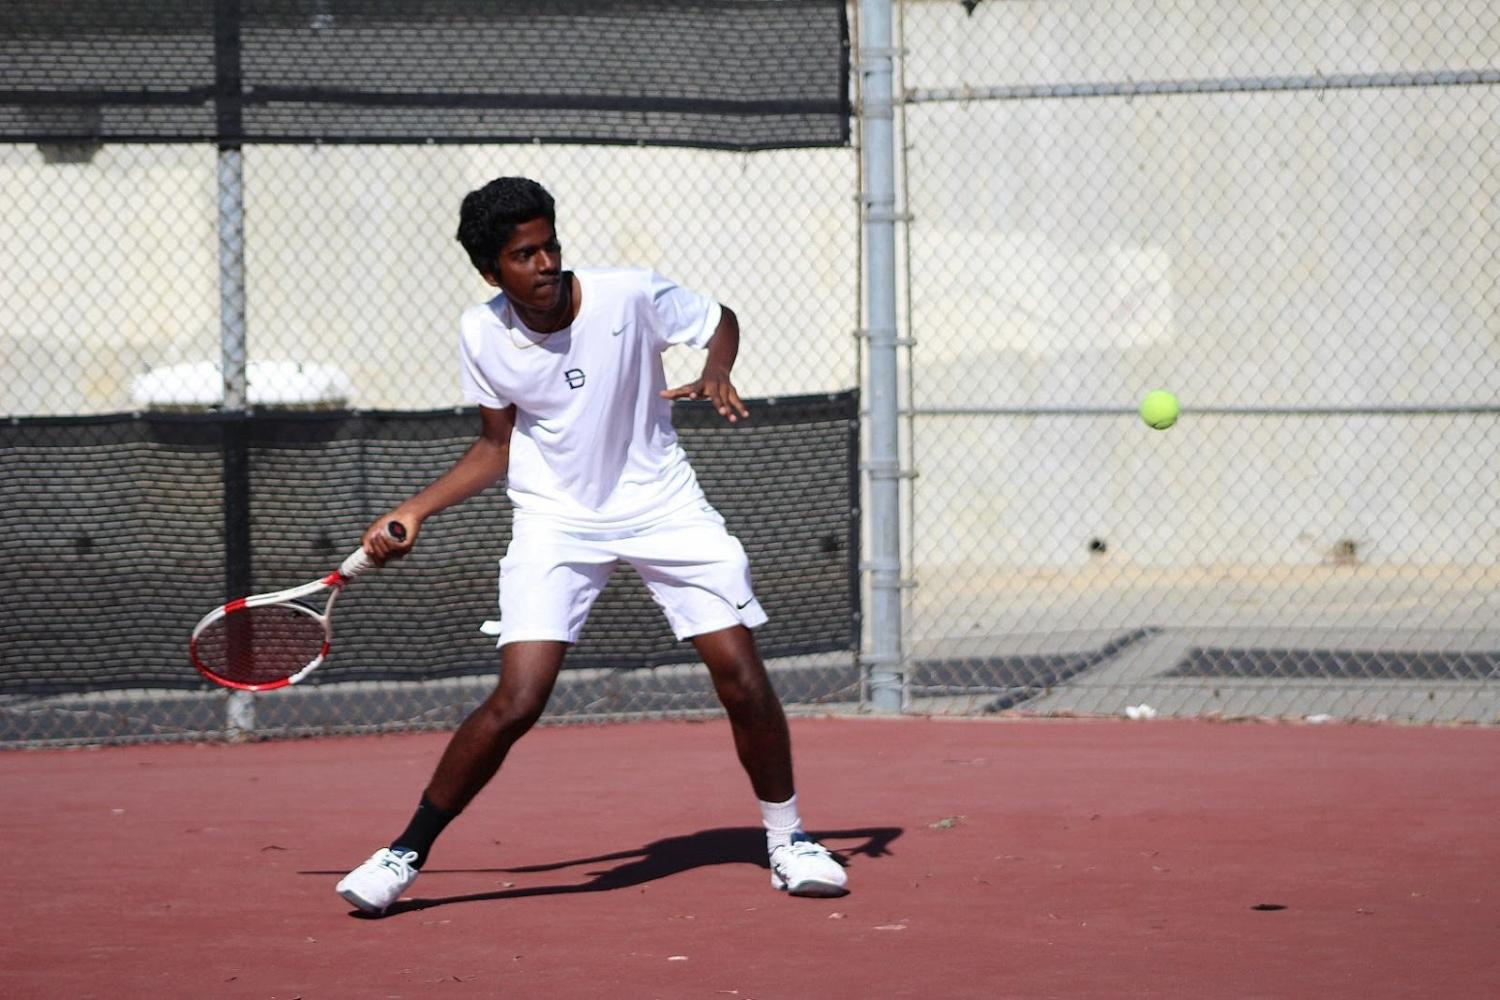 Freshman Akilan Arunachalam competed as a singles players for the Brahmas.